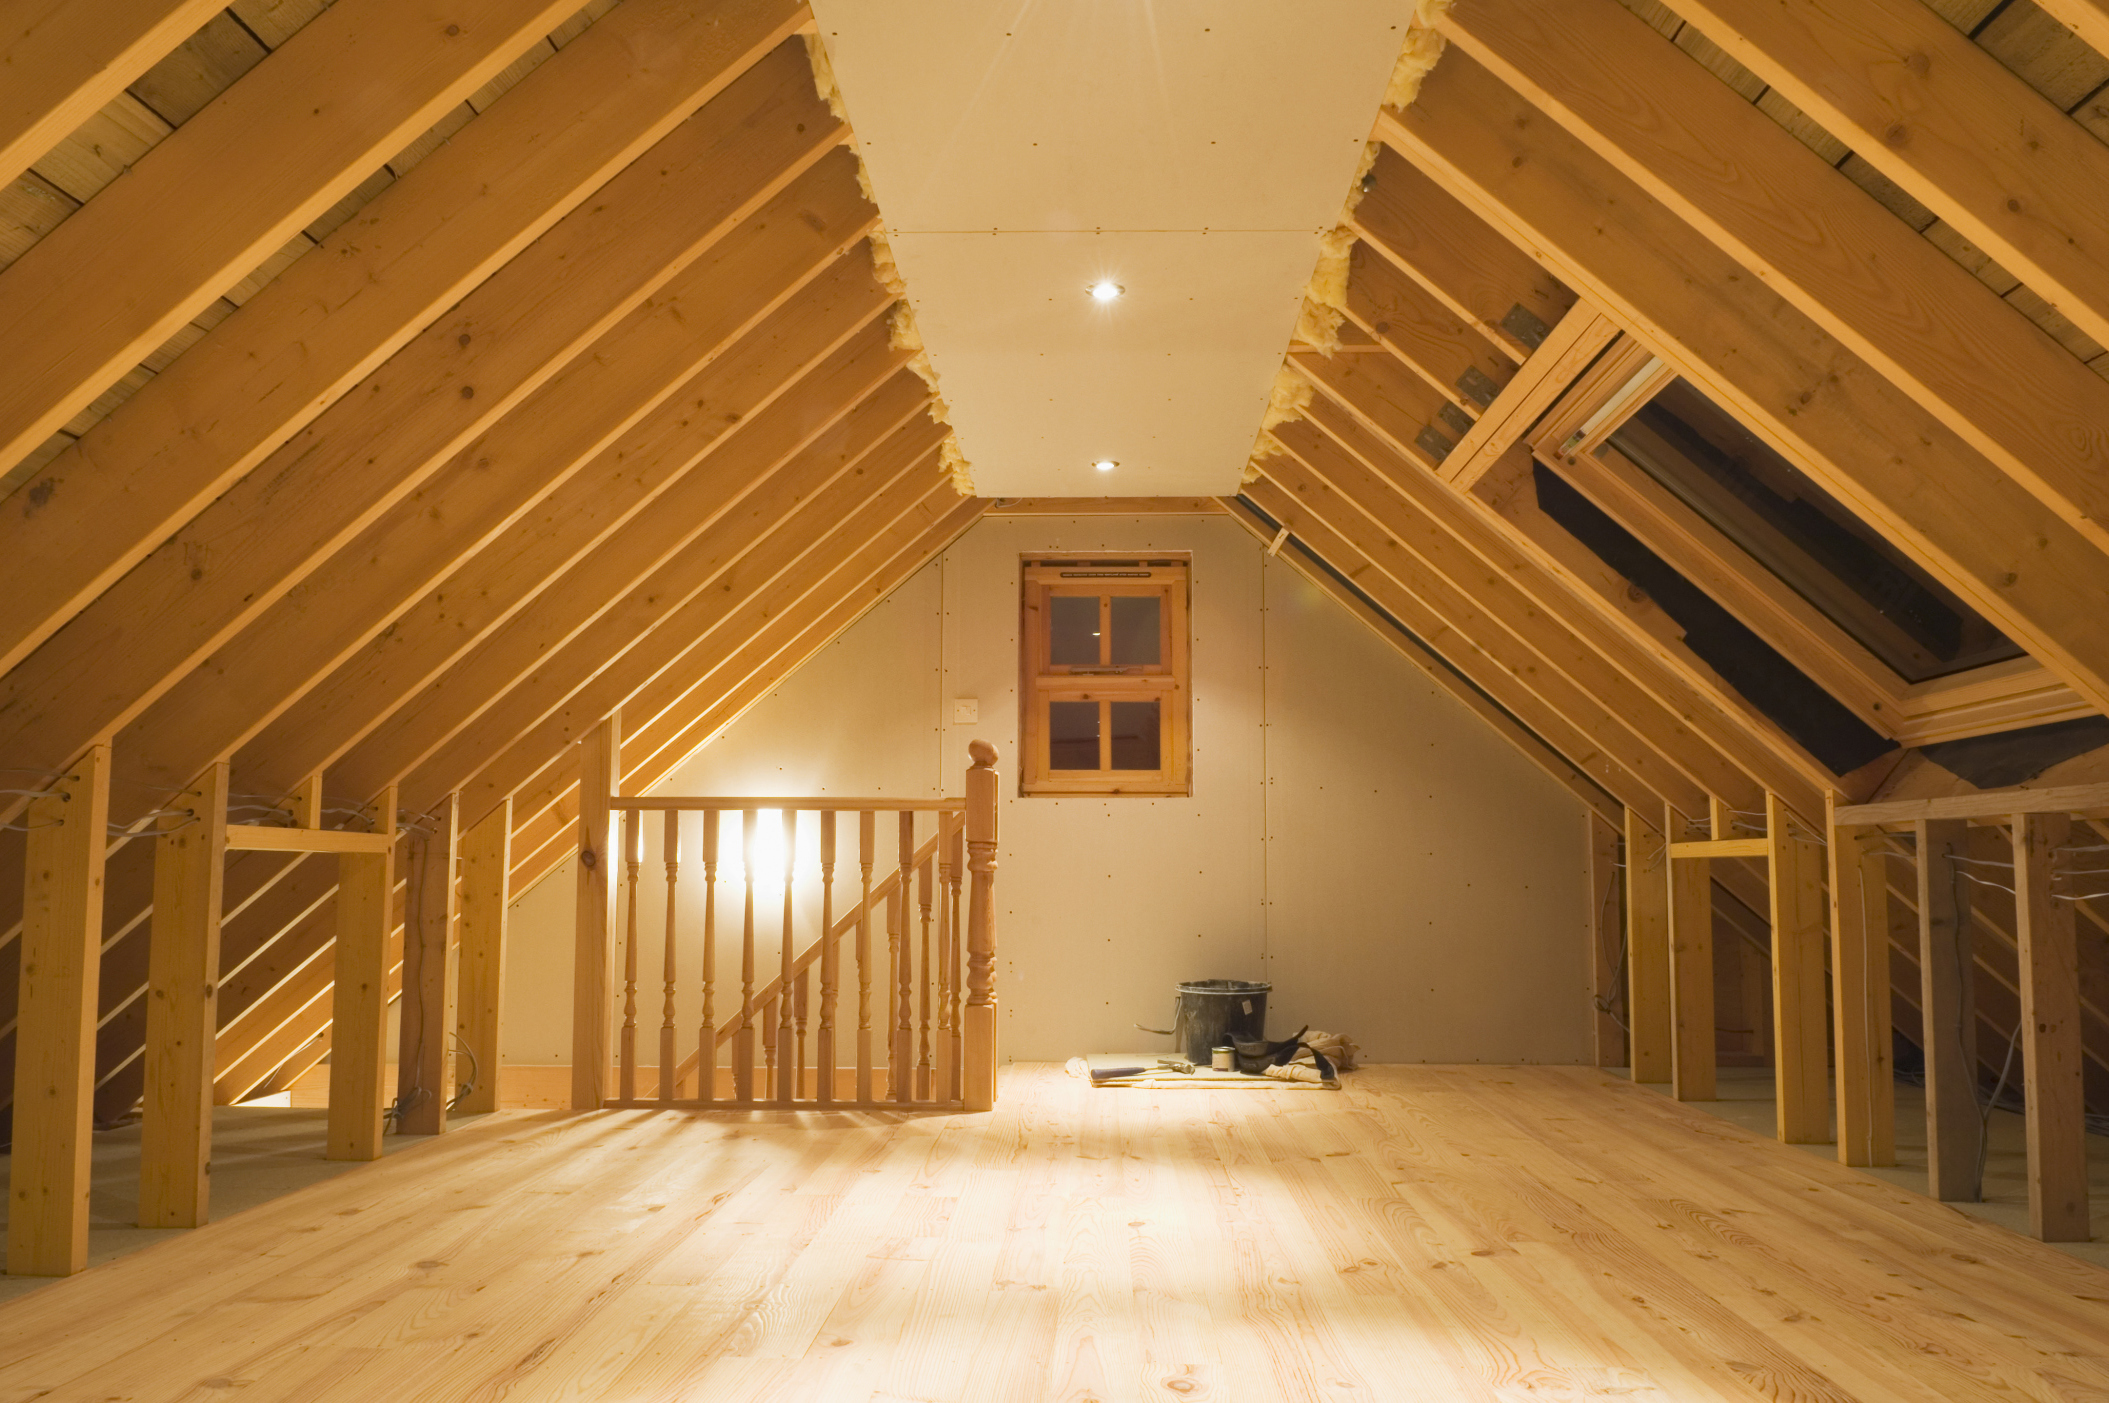 Project Management Services - Convert your unused attic space into extra floor area - Niagara Region